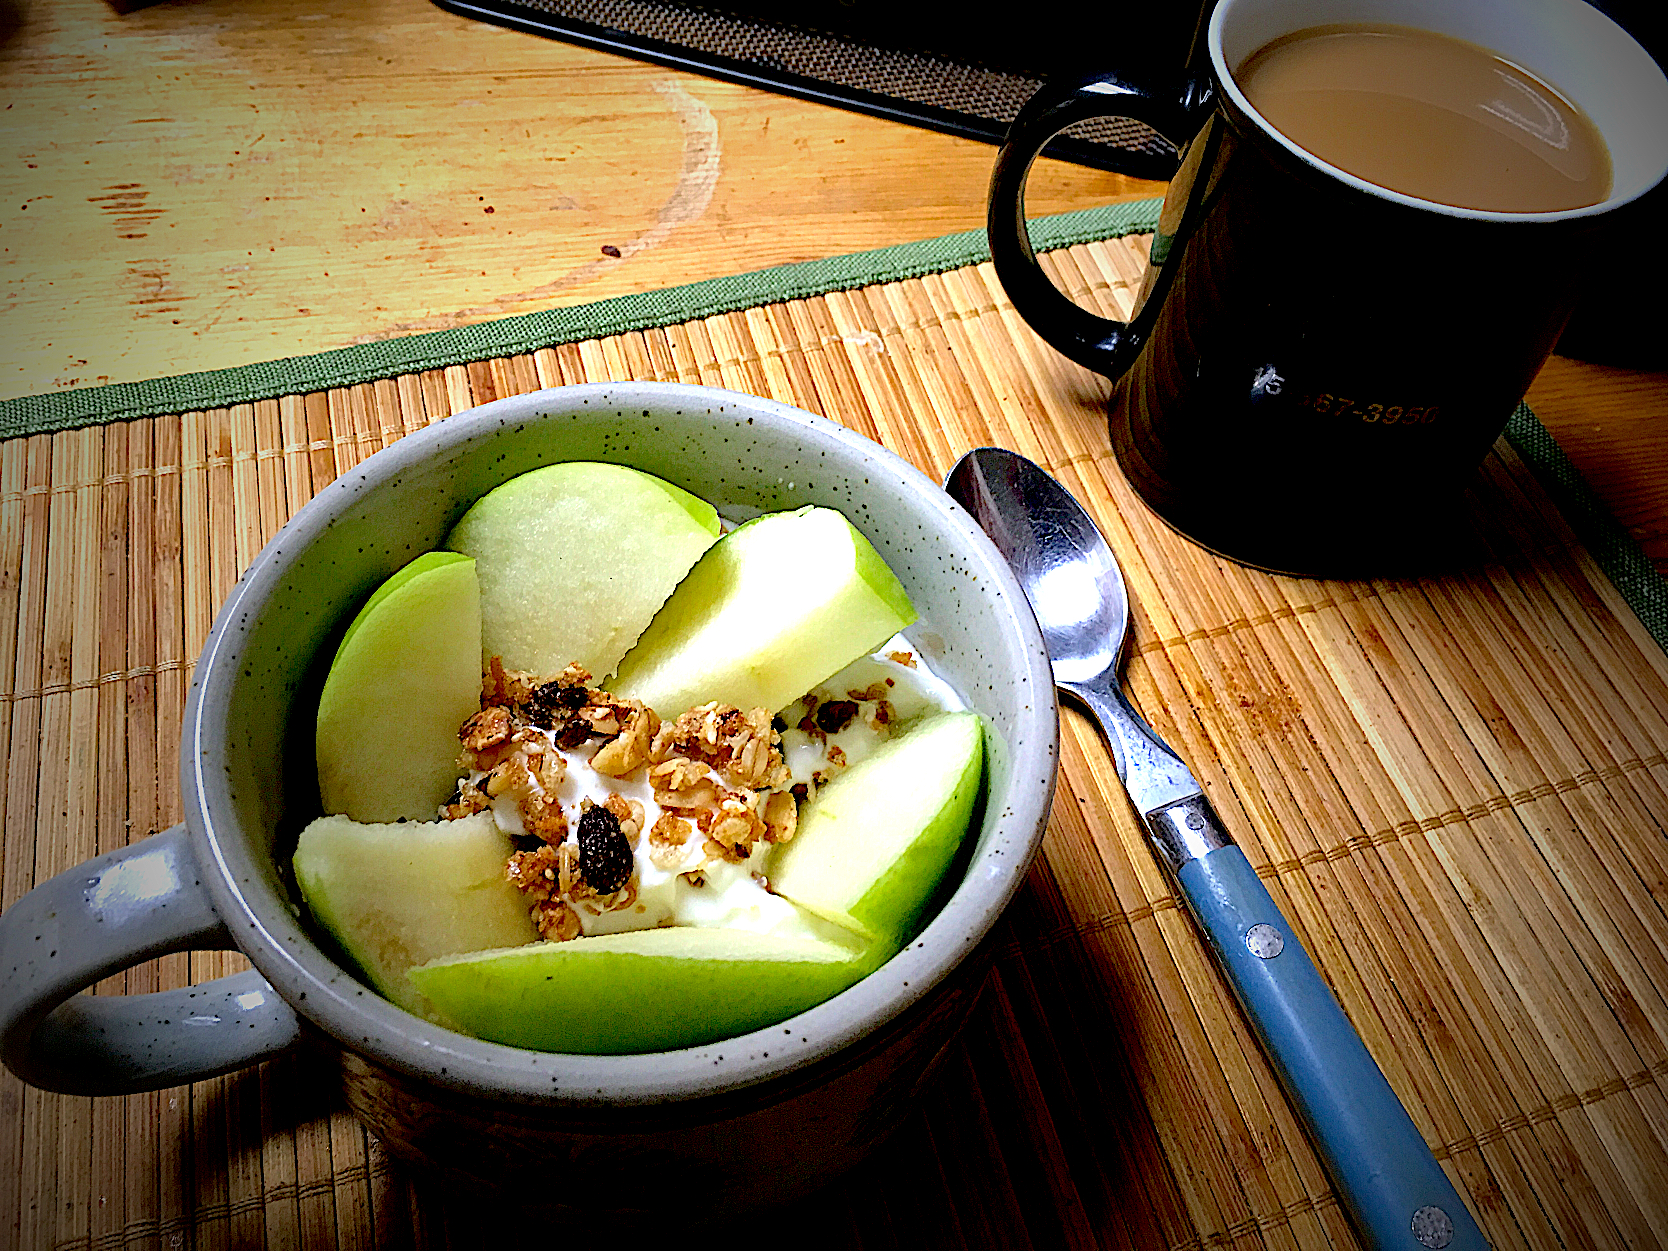 Greek Nonfat Yogurt, Banana Nut Granola, Green Apple Slices, Hazelnut Coffee